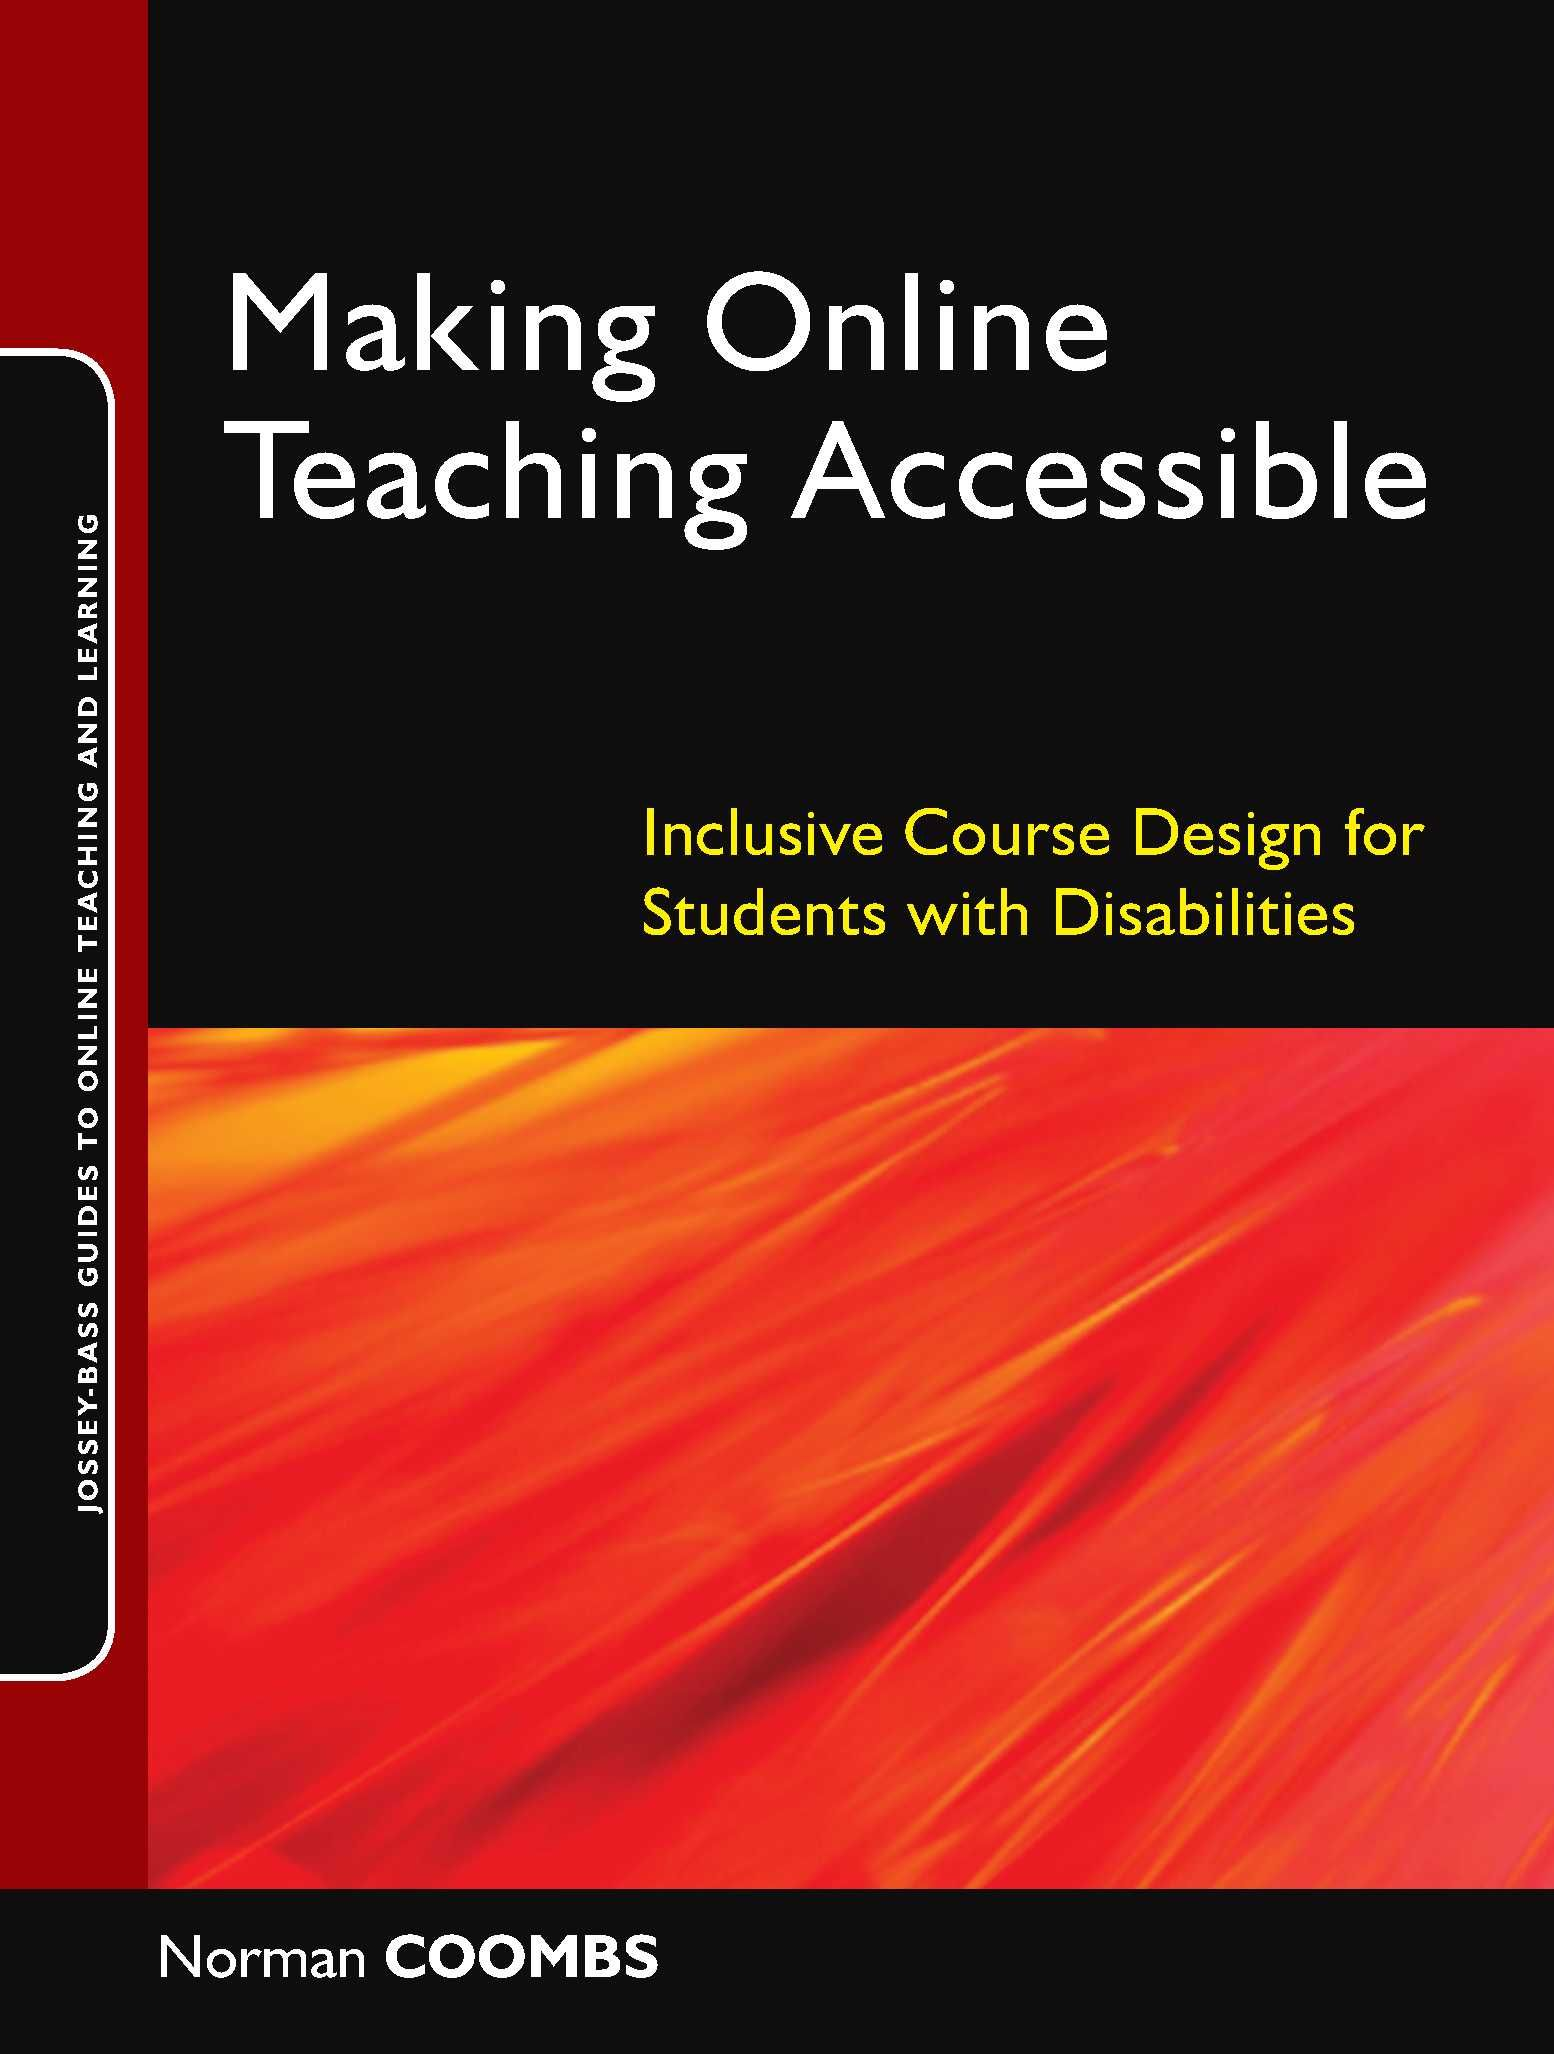 Design book covers online - Making Online Teaching Accessible Jossey Bass Guides To Online Teaching And Learning Inclusive Course Design